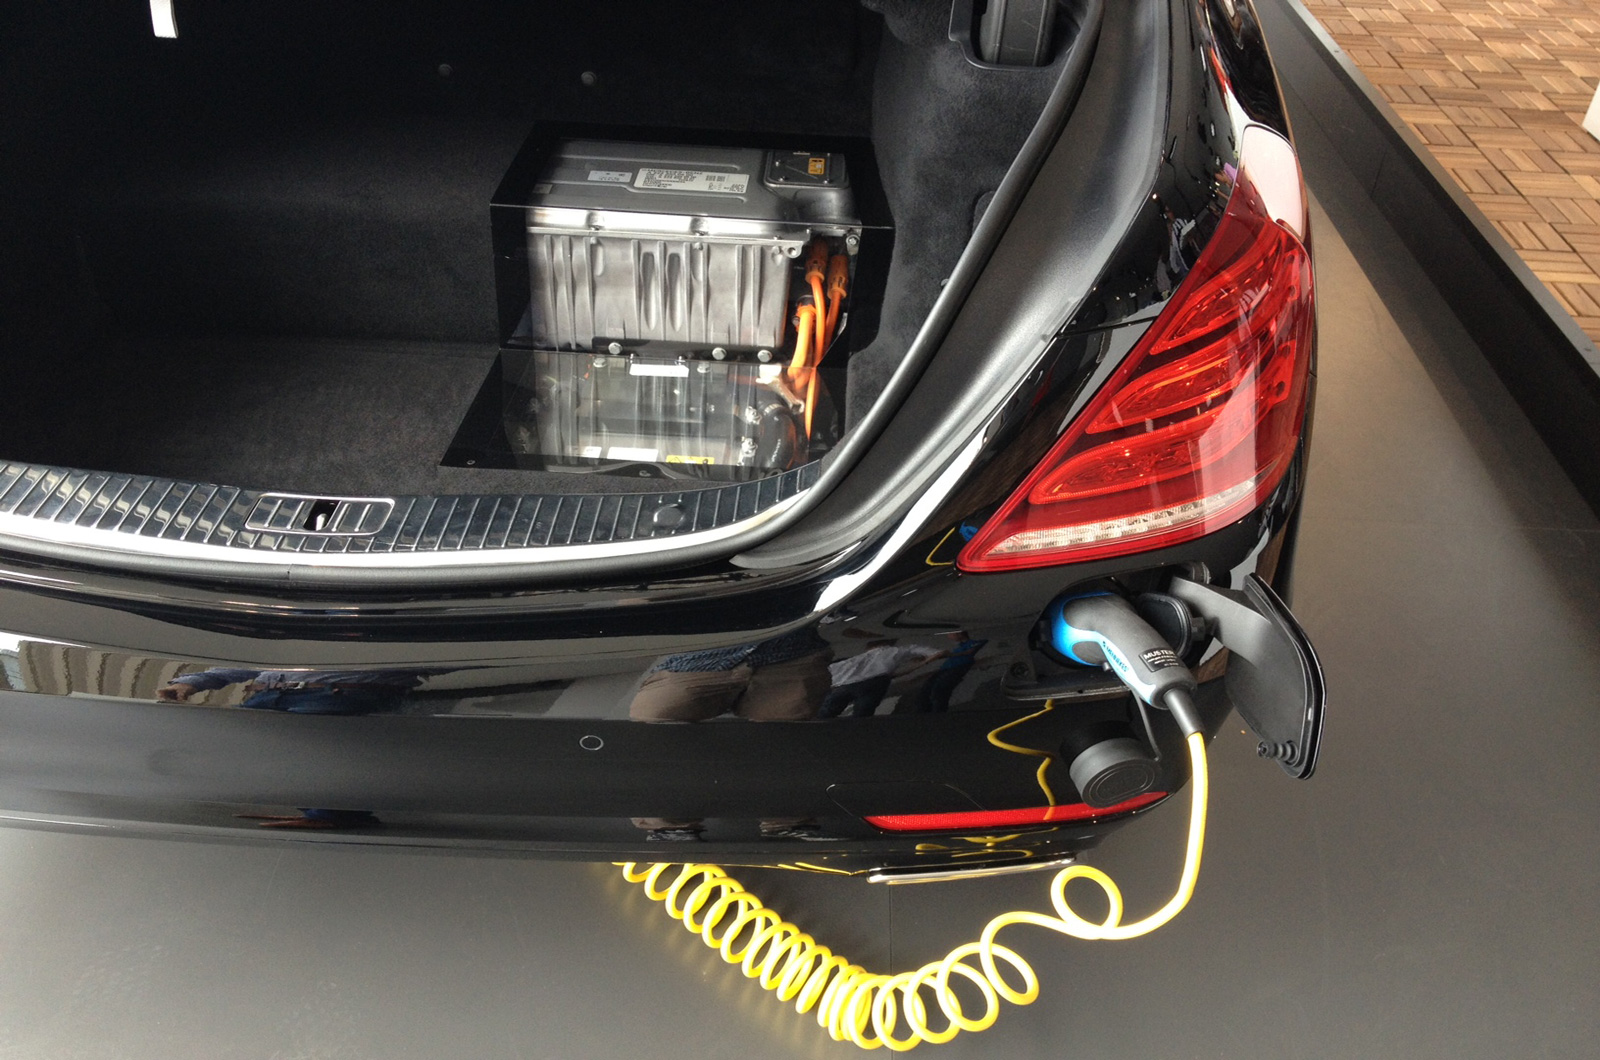 Mercedes benz s500 plug in hybrid battery pack my for How long does it take to build a mercedes benz